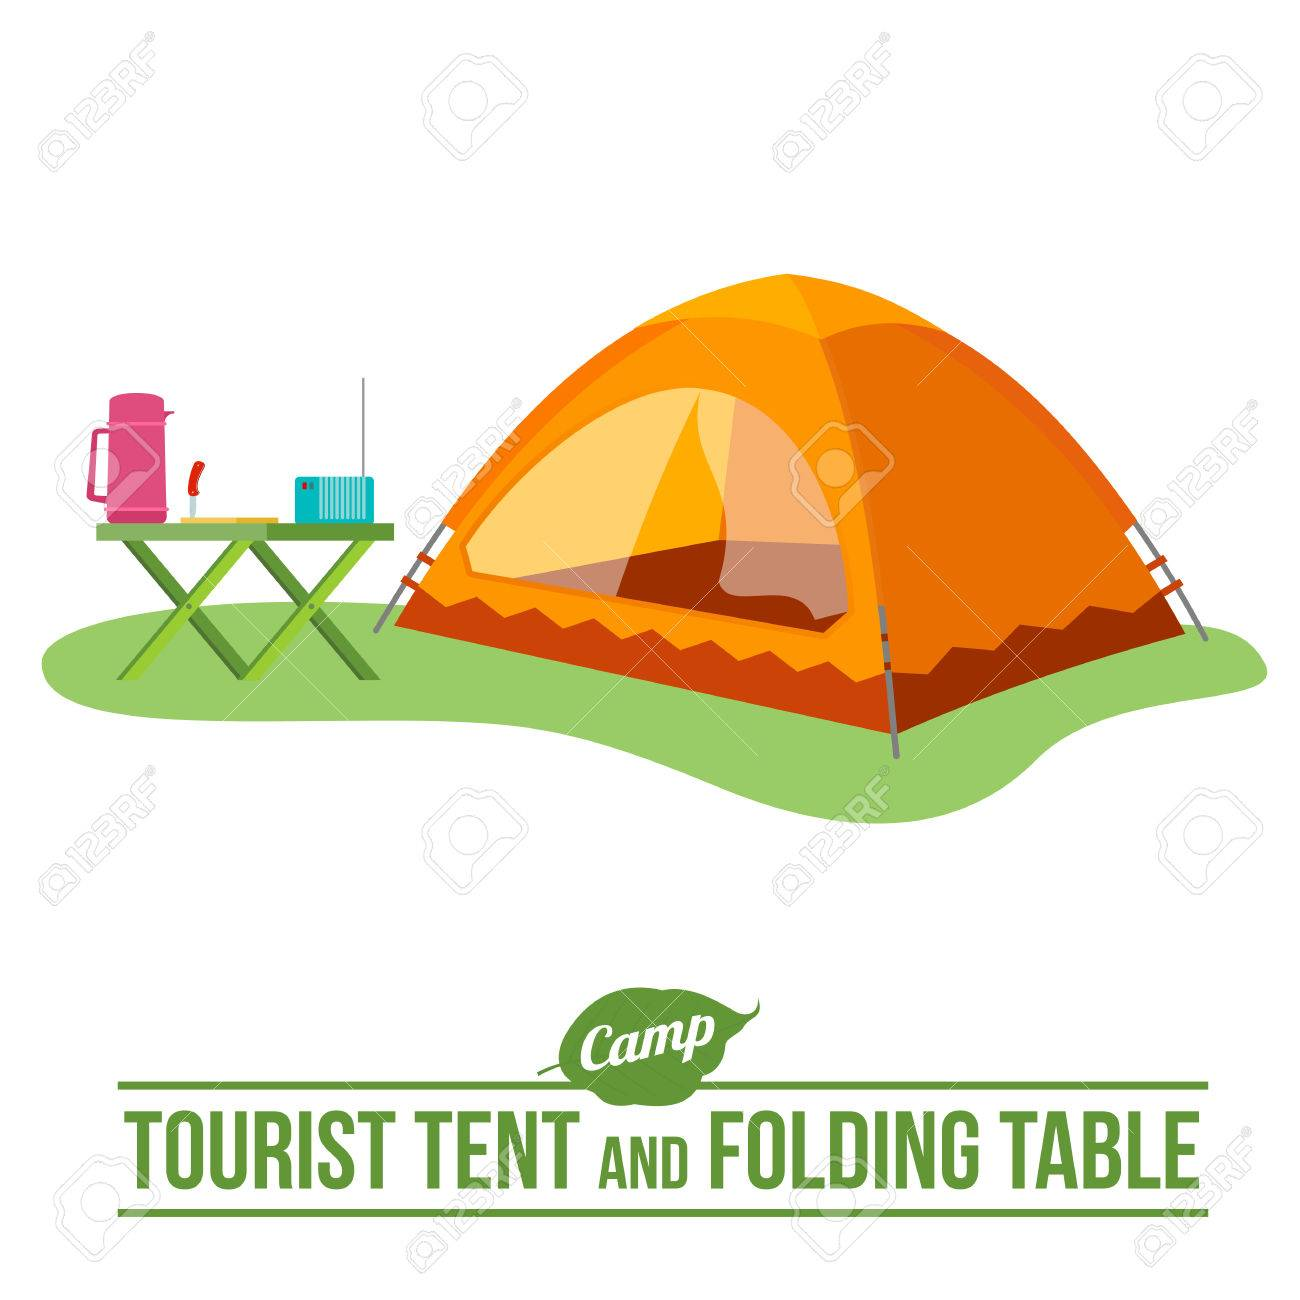 C&ing with tourist tent and folding table outdoor vector flat icon. Web graphics banners  sc 1 st  123RF.com & Camping With Tourist Tent And Folding Table Outdoor Vector Flat ...